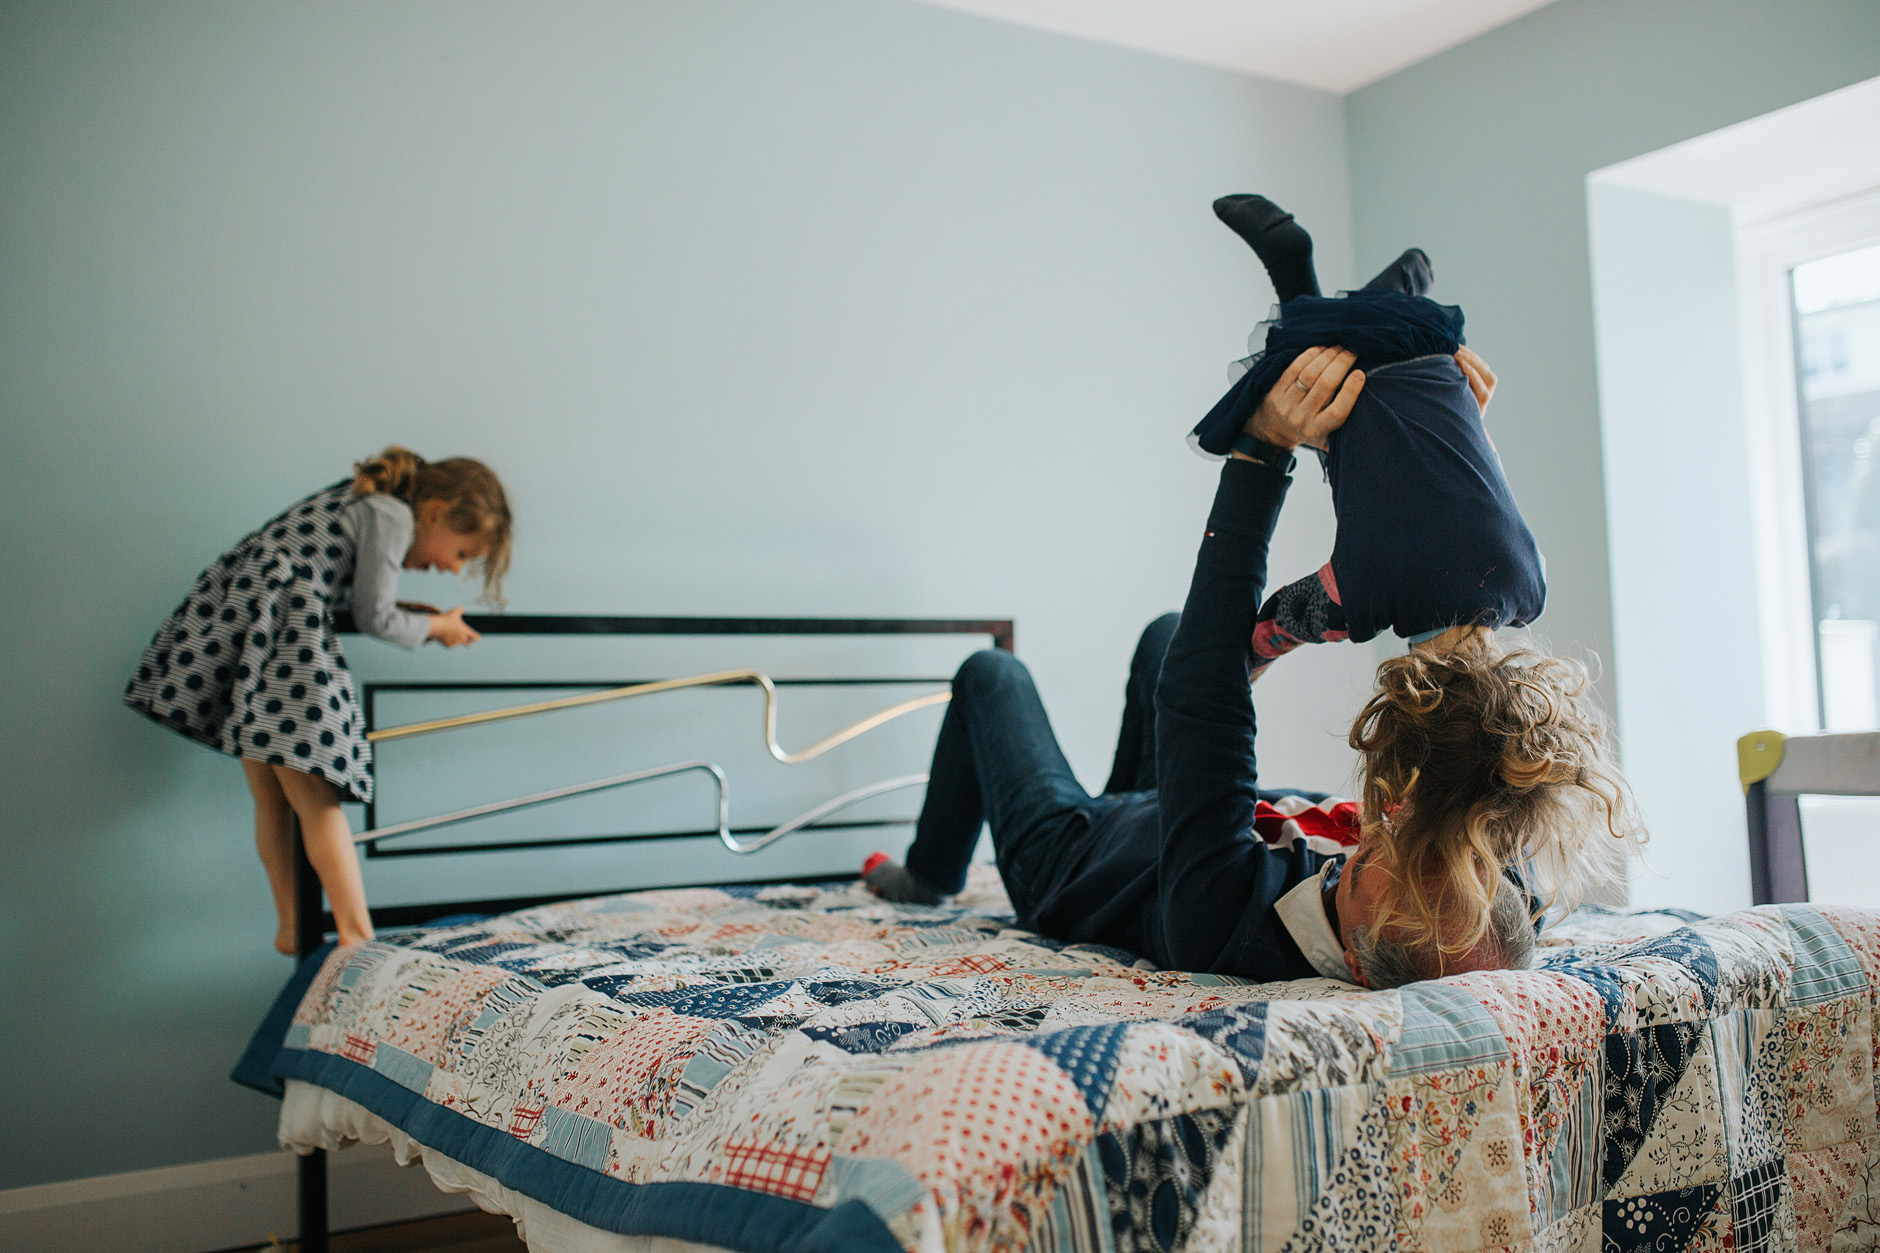 Father playing with the two daughters on the bed